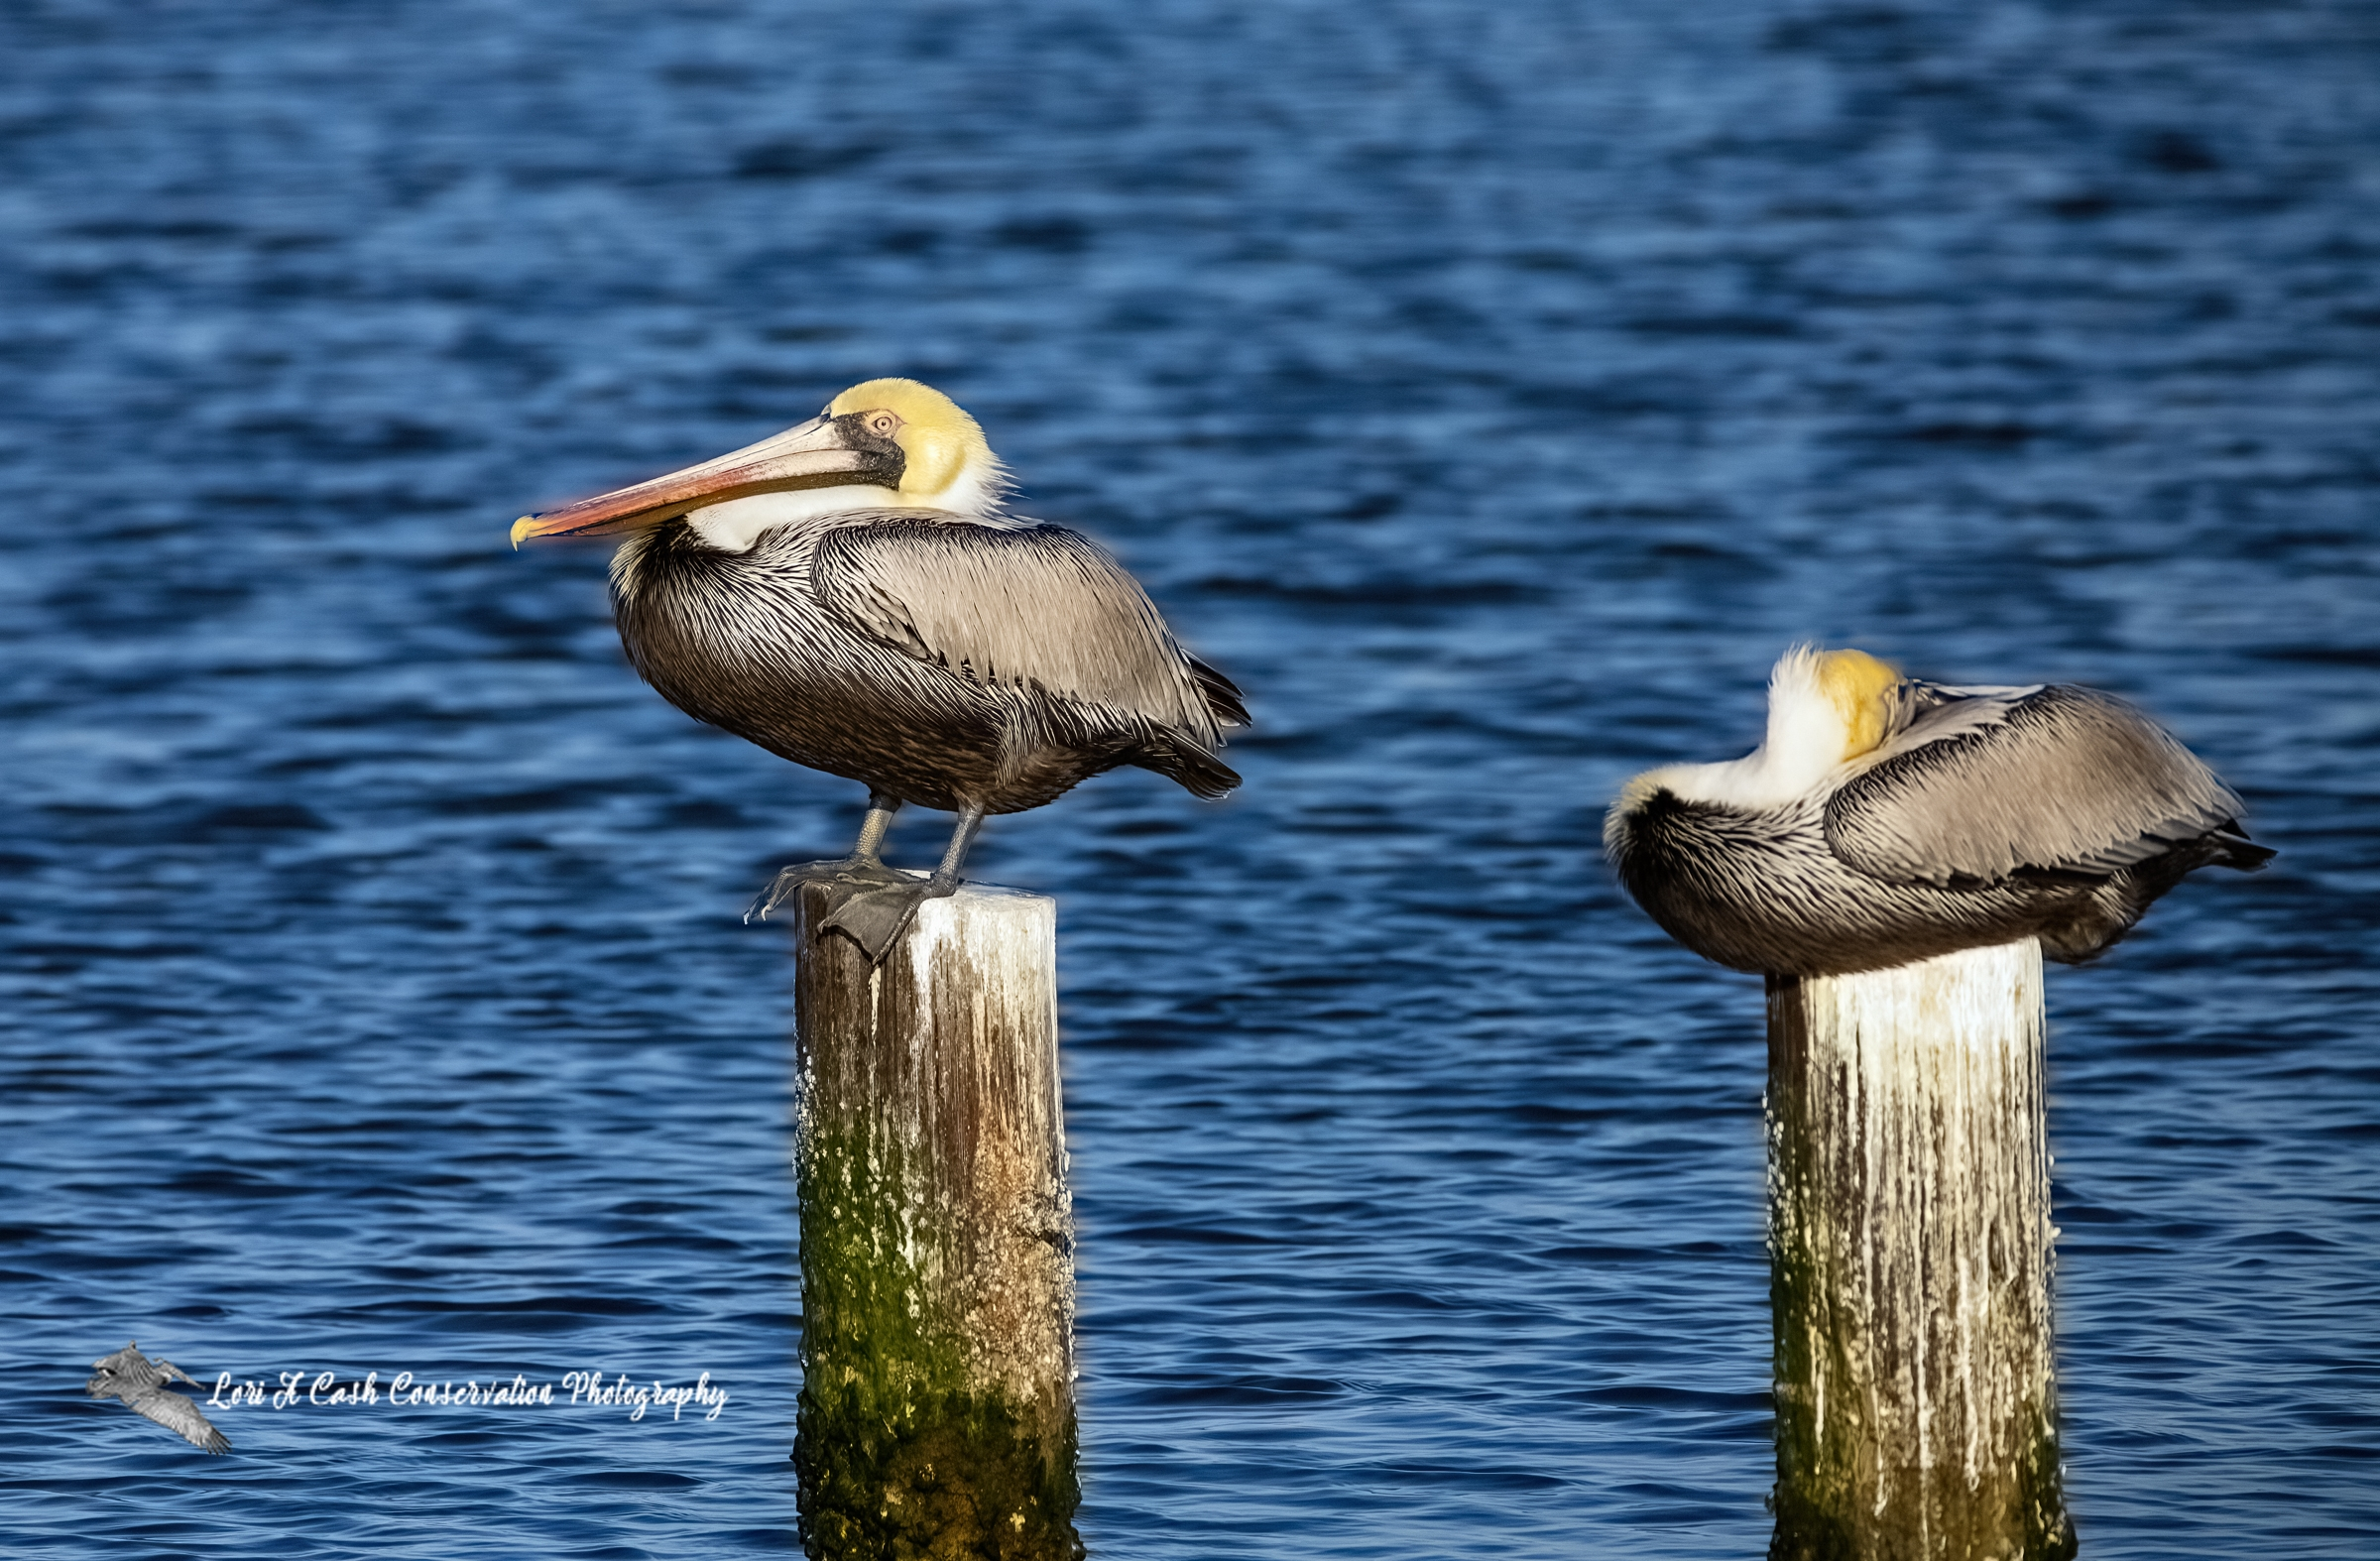 Two adult brown pelicans on posts for roosting as one pelican has head tucked in wings and the other is standing on the post in the late evening in Mill Creek at Phoebus Waterfront Park in Hampton, Virginia.